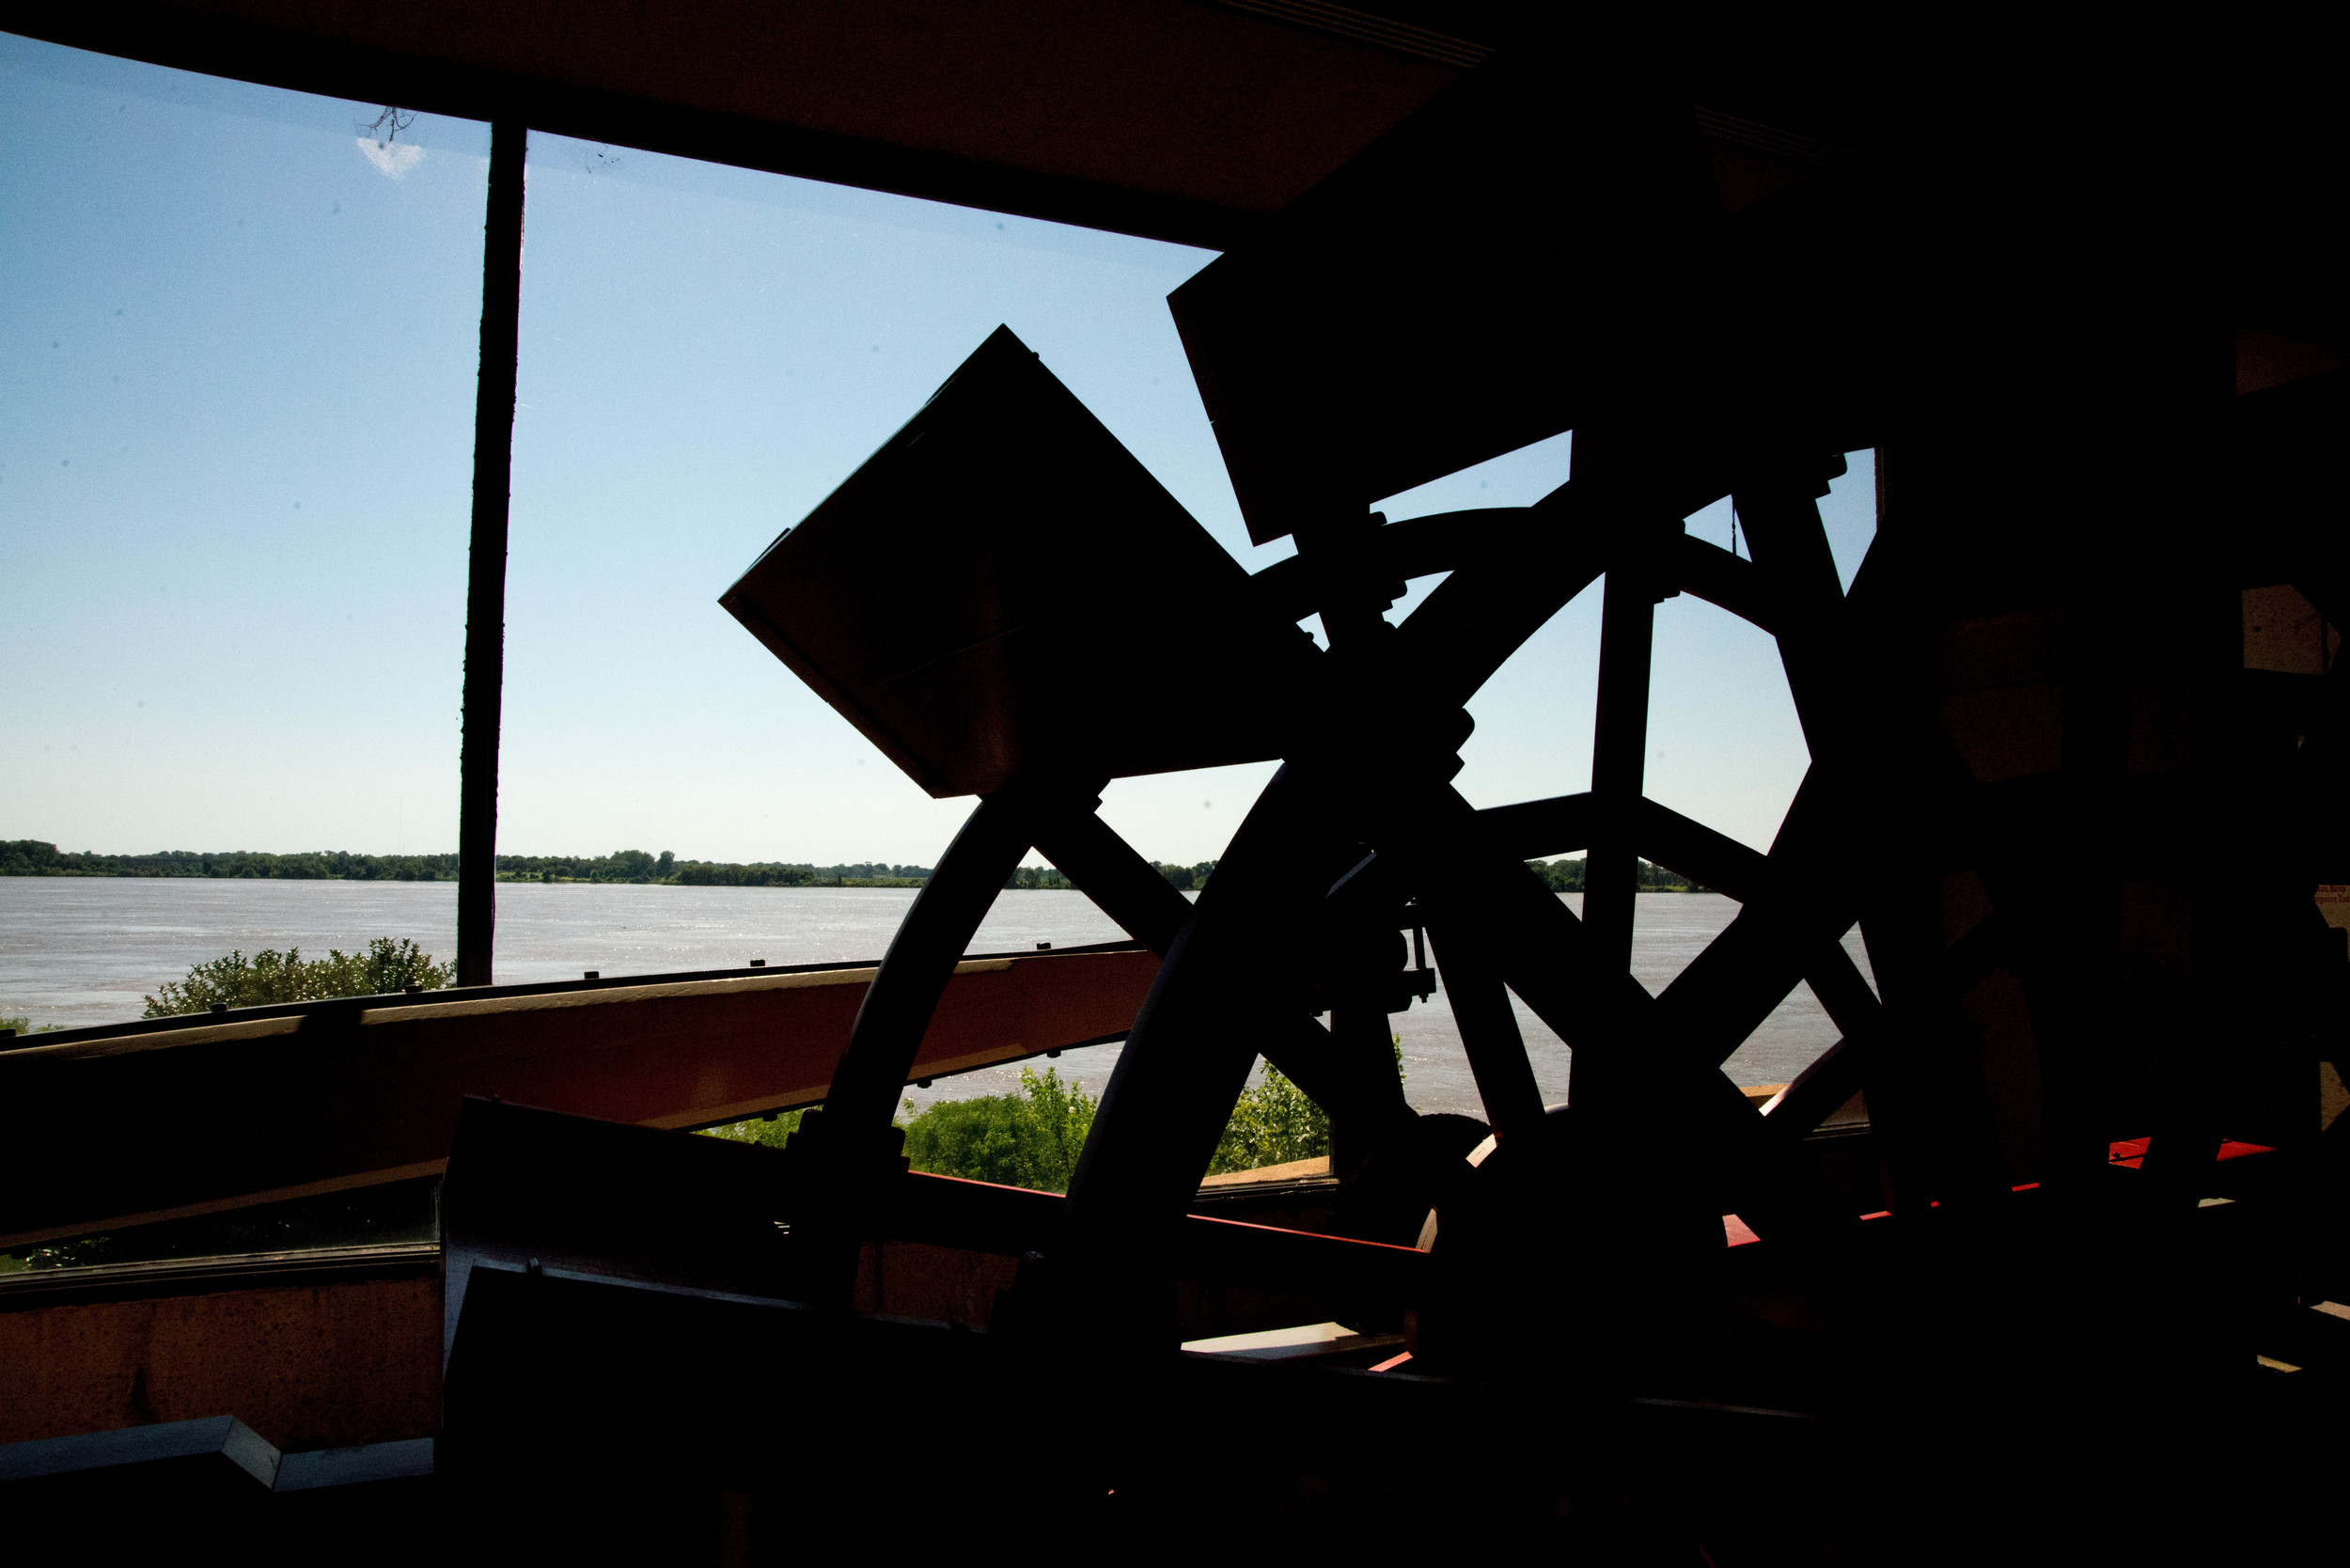 A retired paddle-wheel sits in the Mississippi River Museum located on Mud Island, outside of Memphis, TN.